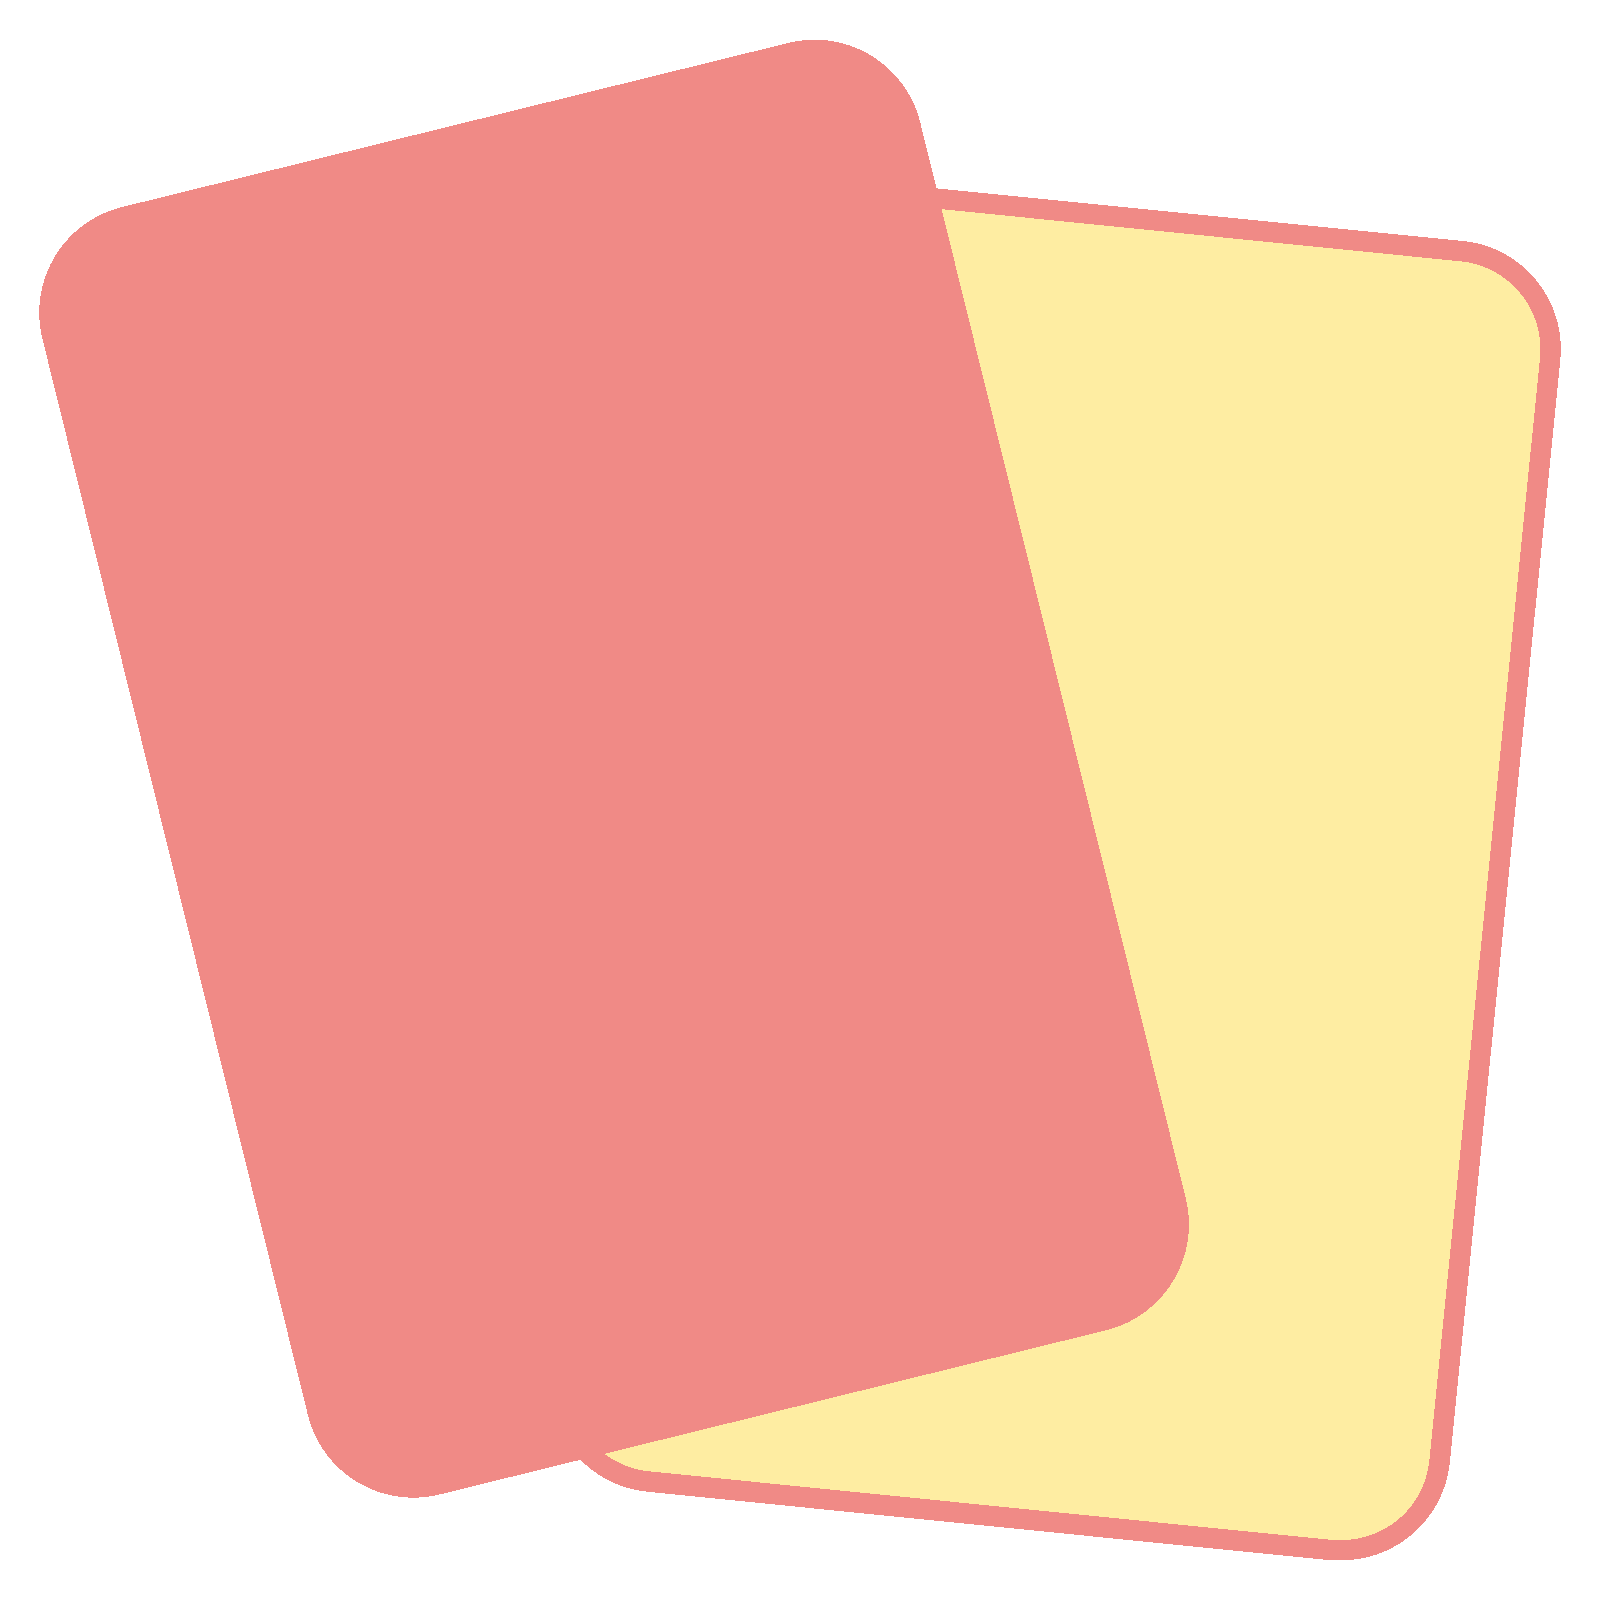 Card images png. Red icon free download